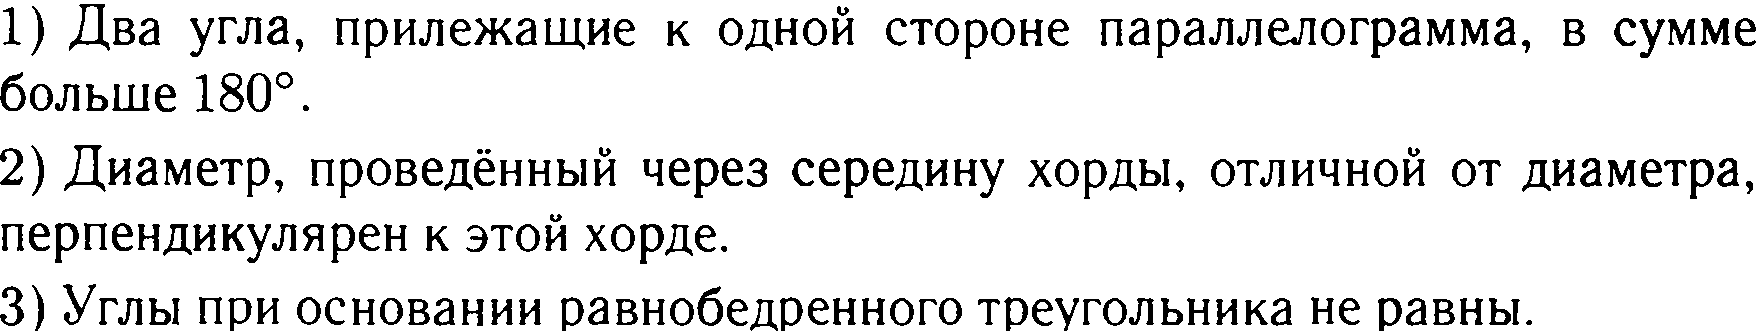 http://doc4web.ru/uploads/files/77/77306/hello_html_m2690bc9d.png